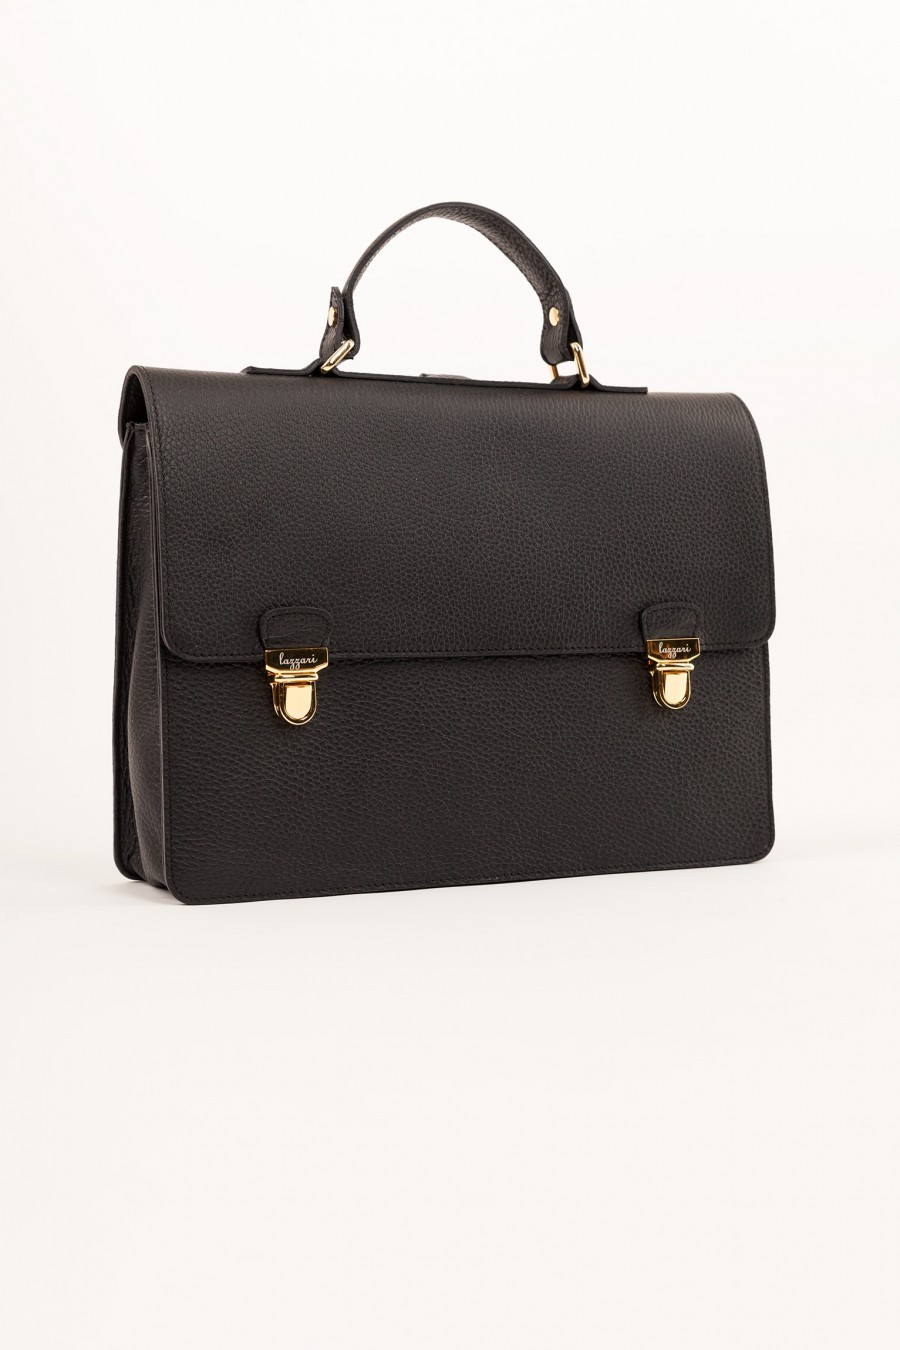 leather satchel Lazzari